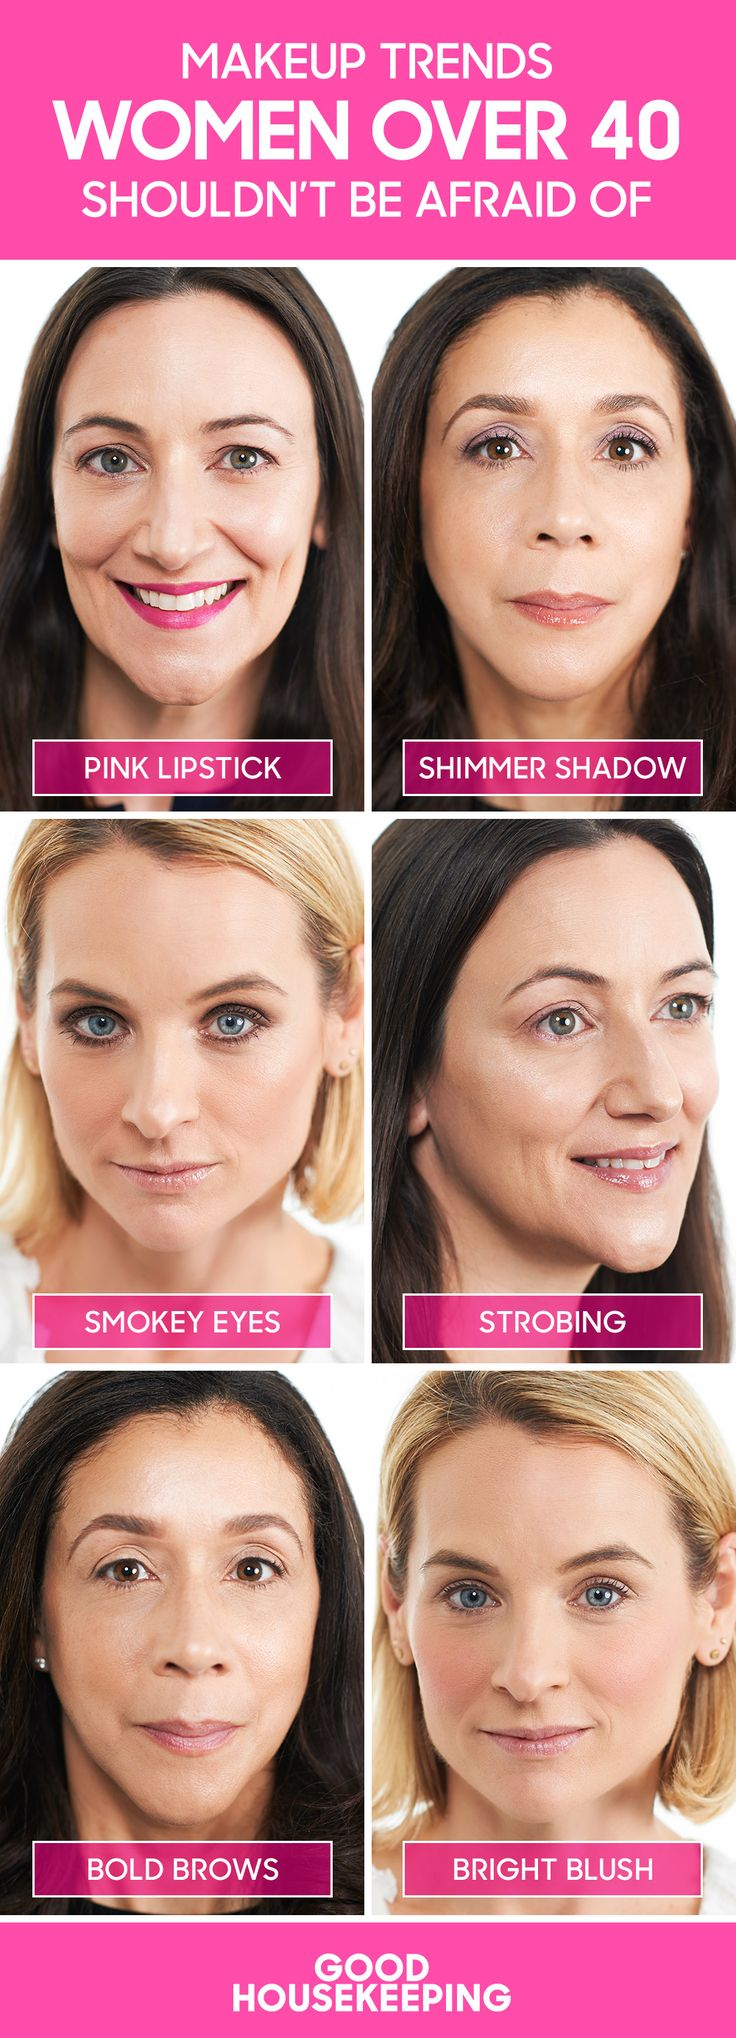 makeup looks for over 40s dating